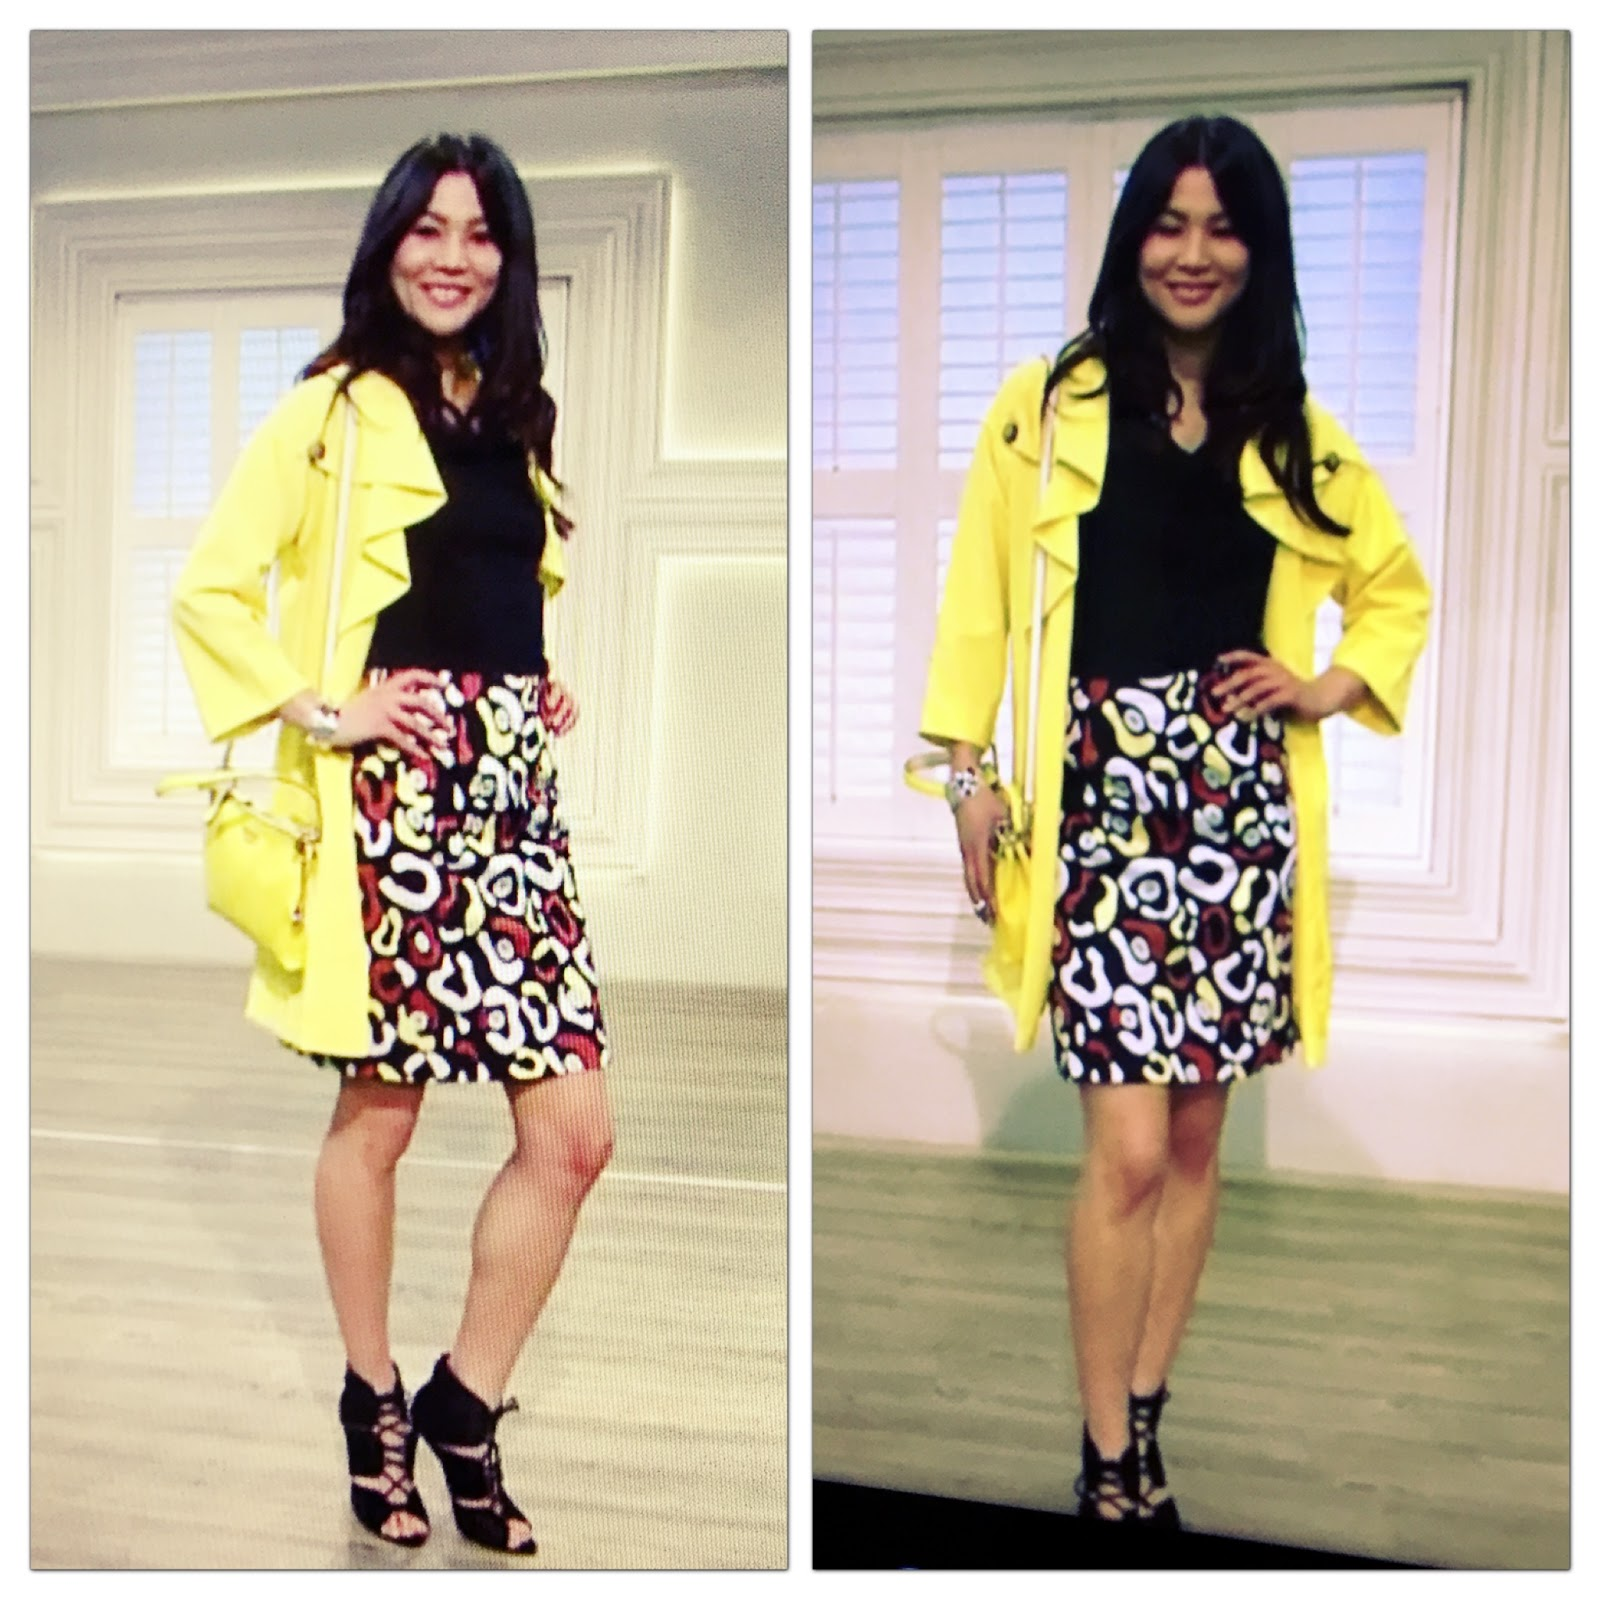 Nv nick verreosqvc uk march 2016 show and photo recap model in nv nick verreos yellow cascade collar trench coat cowl drape top and stretch woven printed skirt qvc uk ccuart Gallery